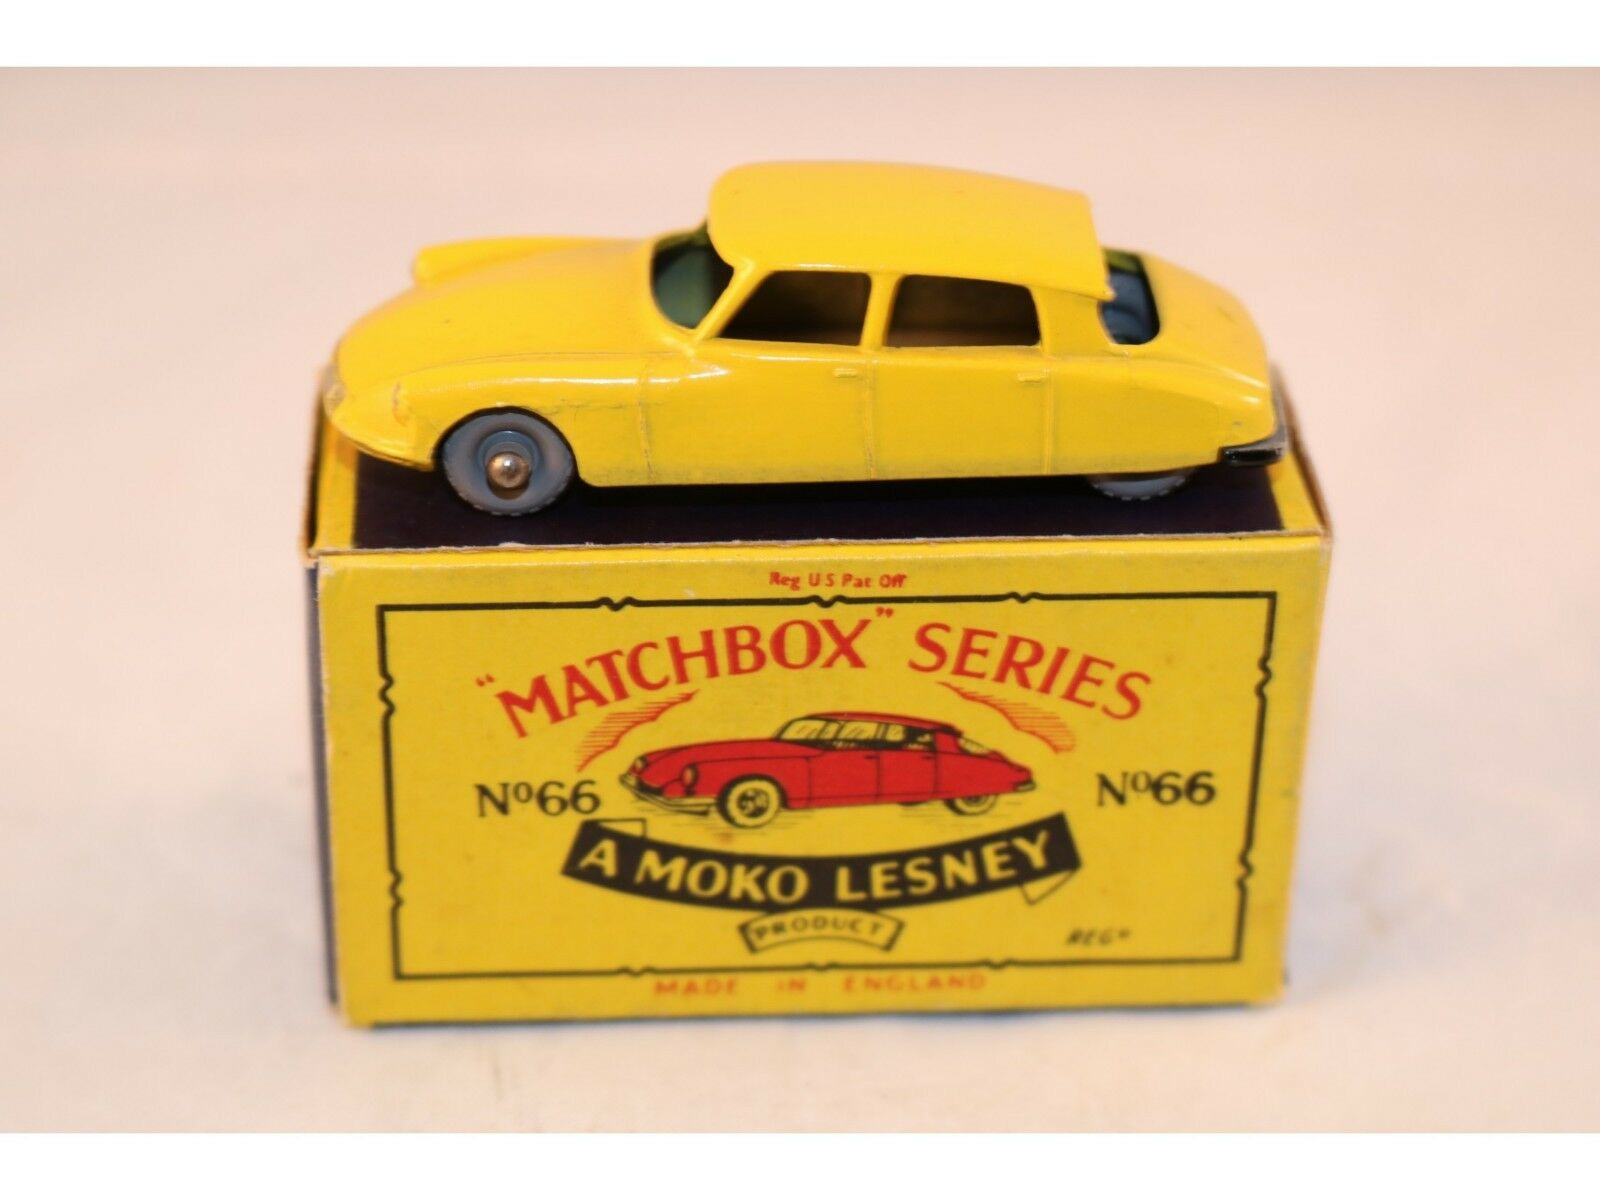 Matchbox ein moko lesney nr. 66 citroen ds 19 gpw sehr nahe - in - box